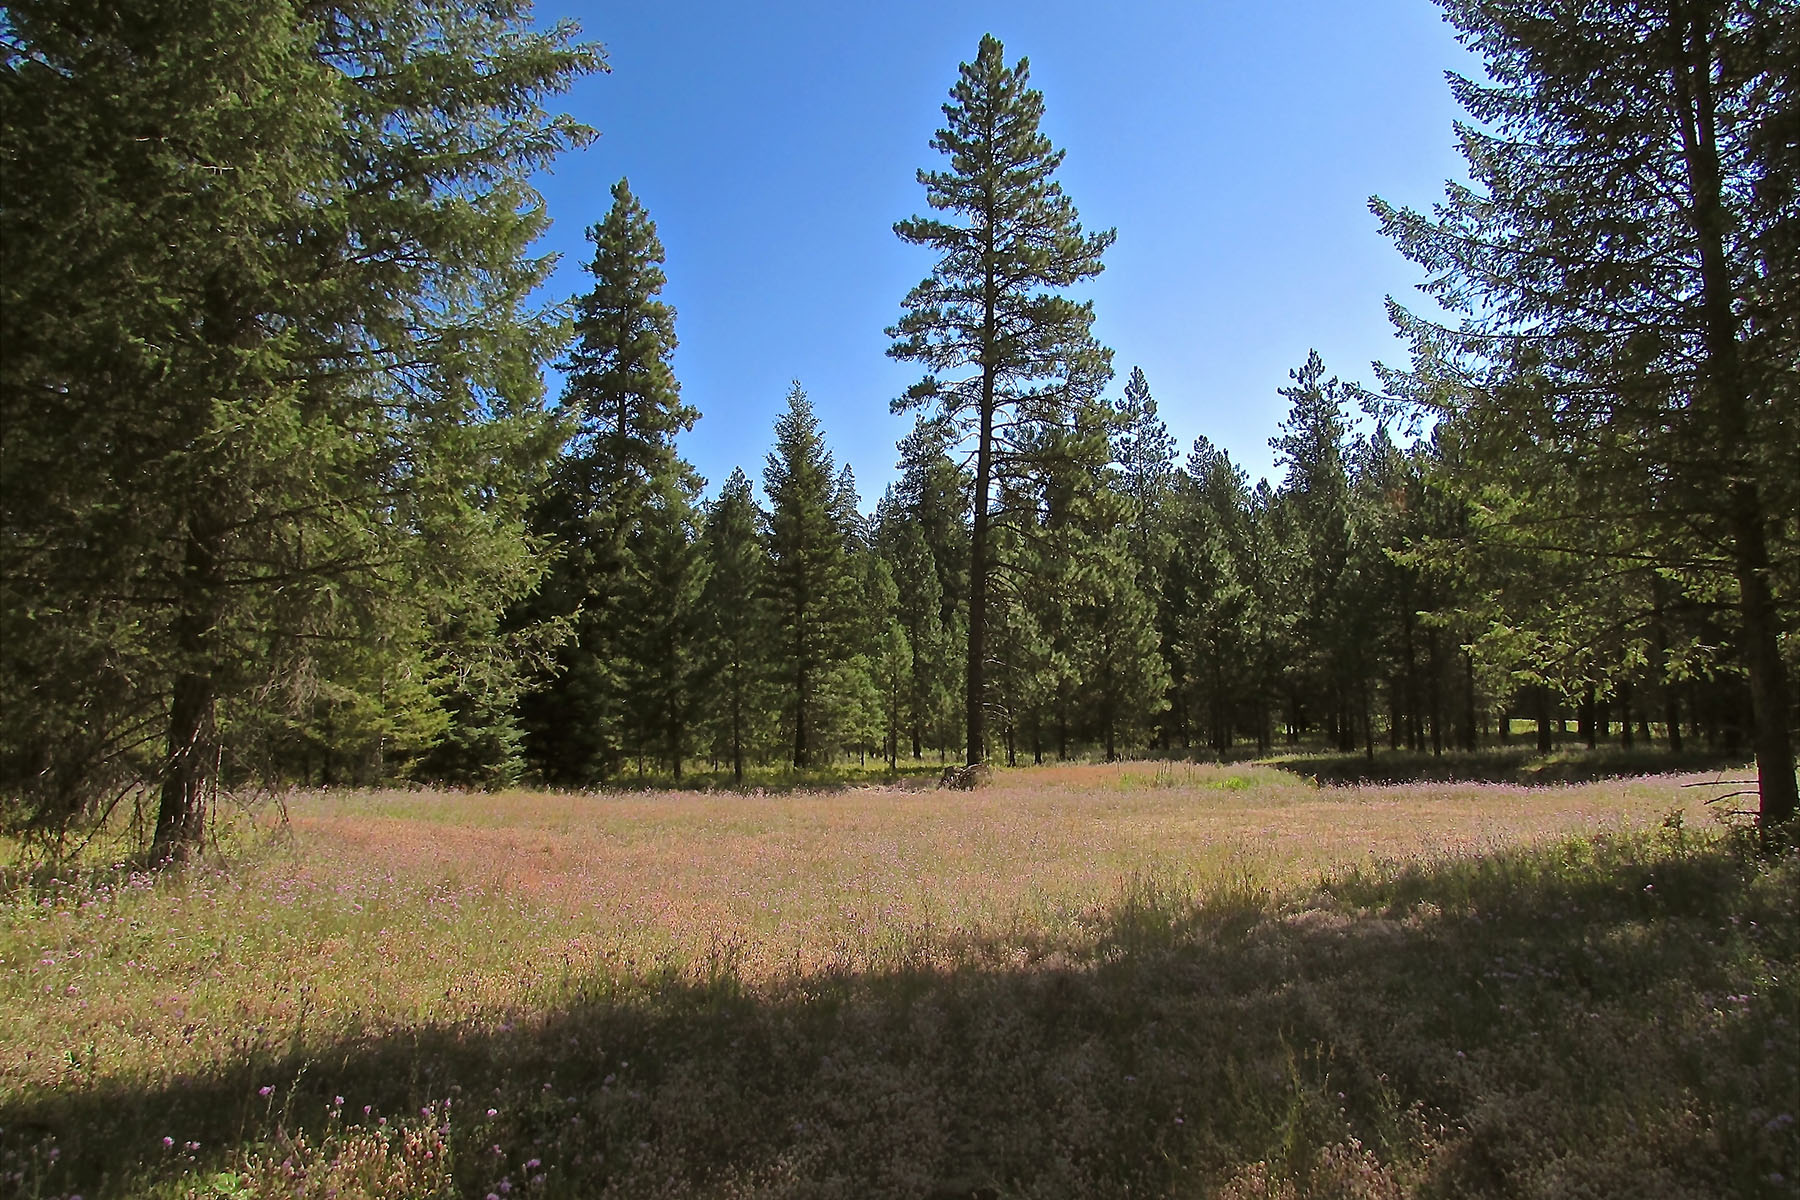 Terreno por un Venta en Beautiful 5 acres, Build your Custom Home! Lot 4 Douglas Clan Rd Priest River, Idaho, 83856 Estados Unidos